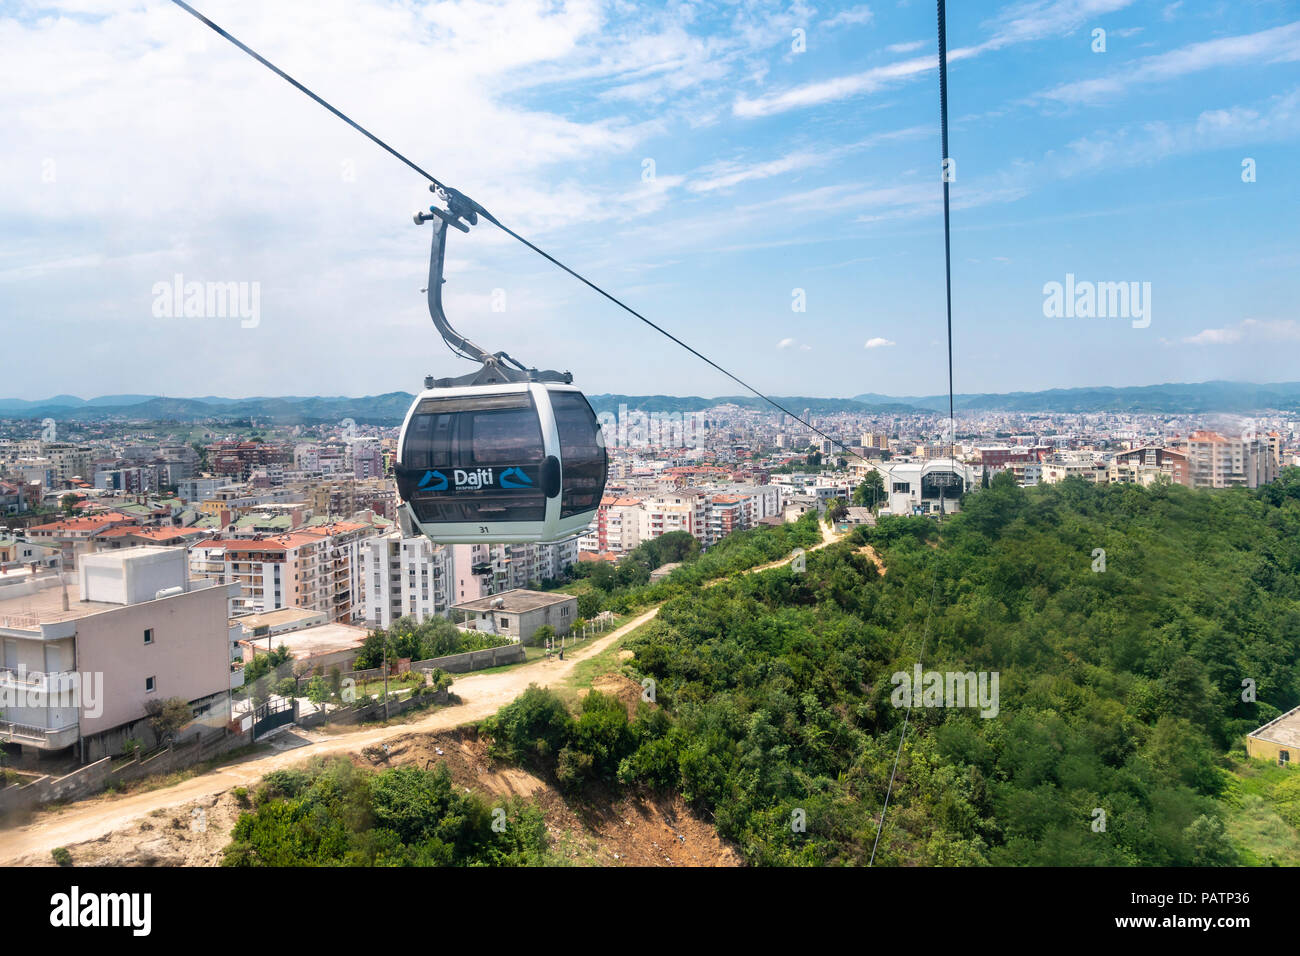 The Dajti Ekspres cableway which carries passengers up to Mount Dajti National Park on the edge of Tirana, Albania, - Stock Image